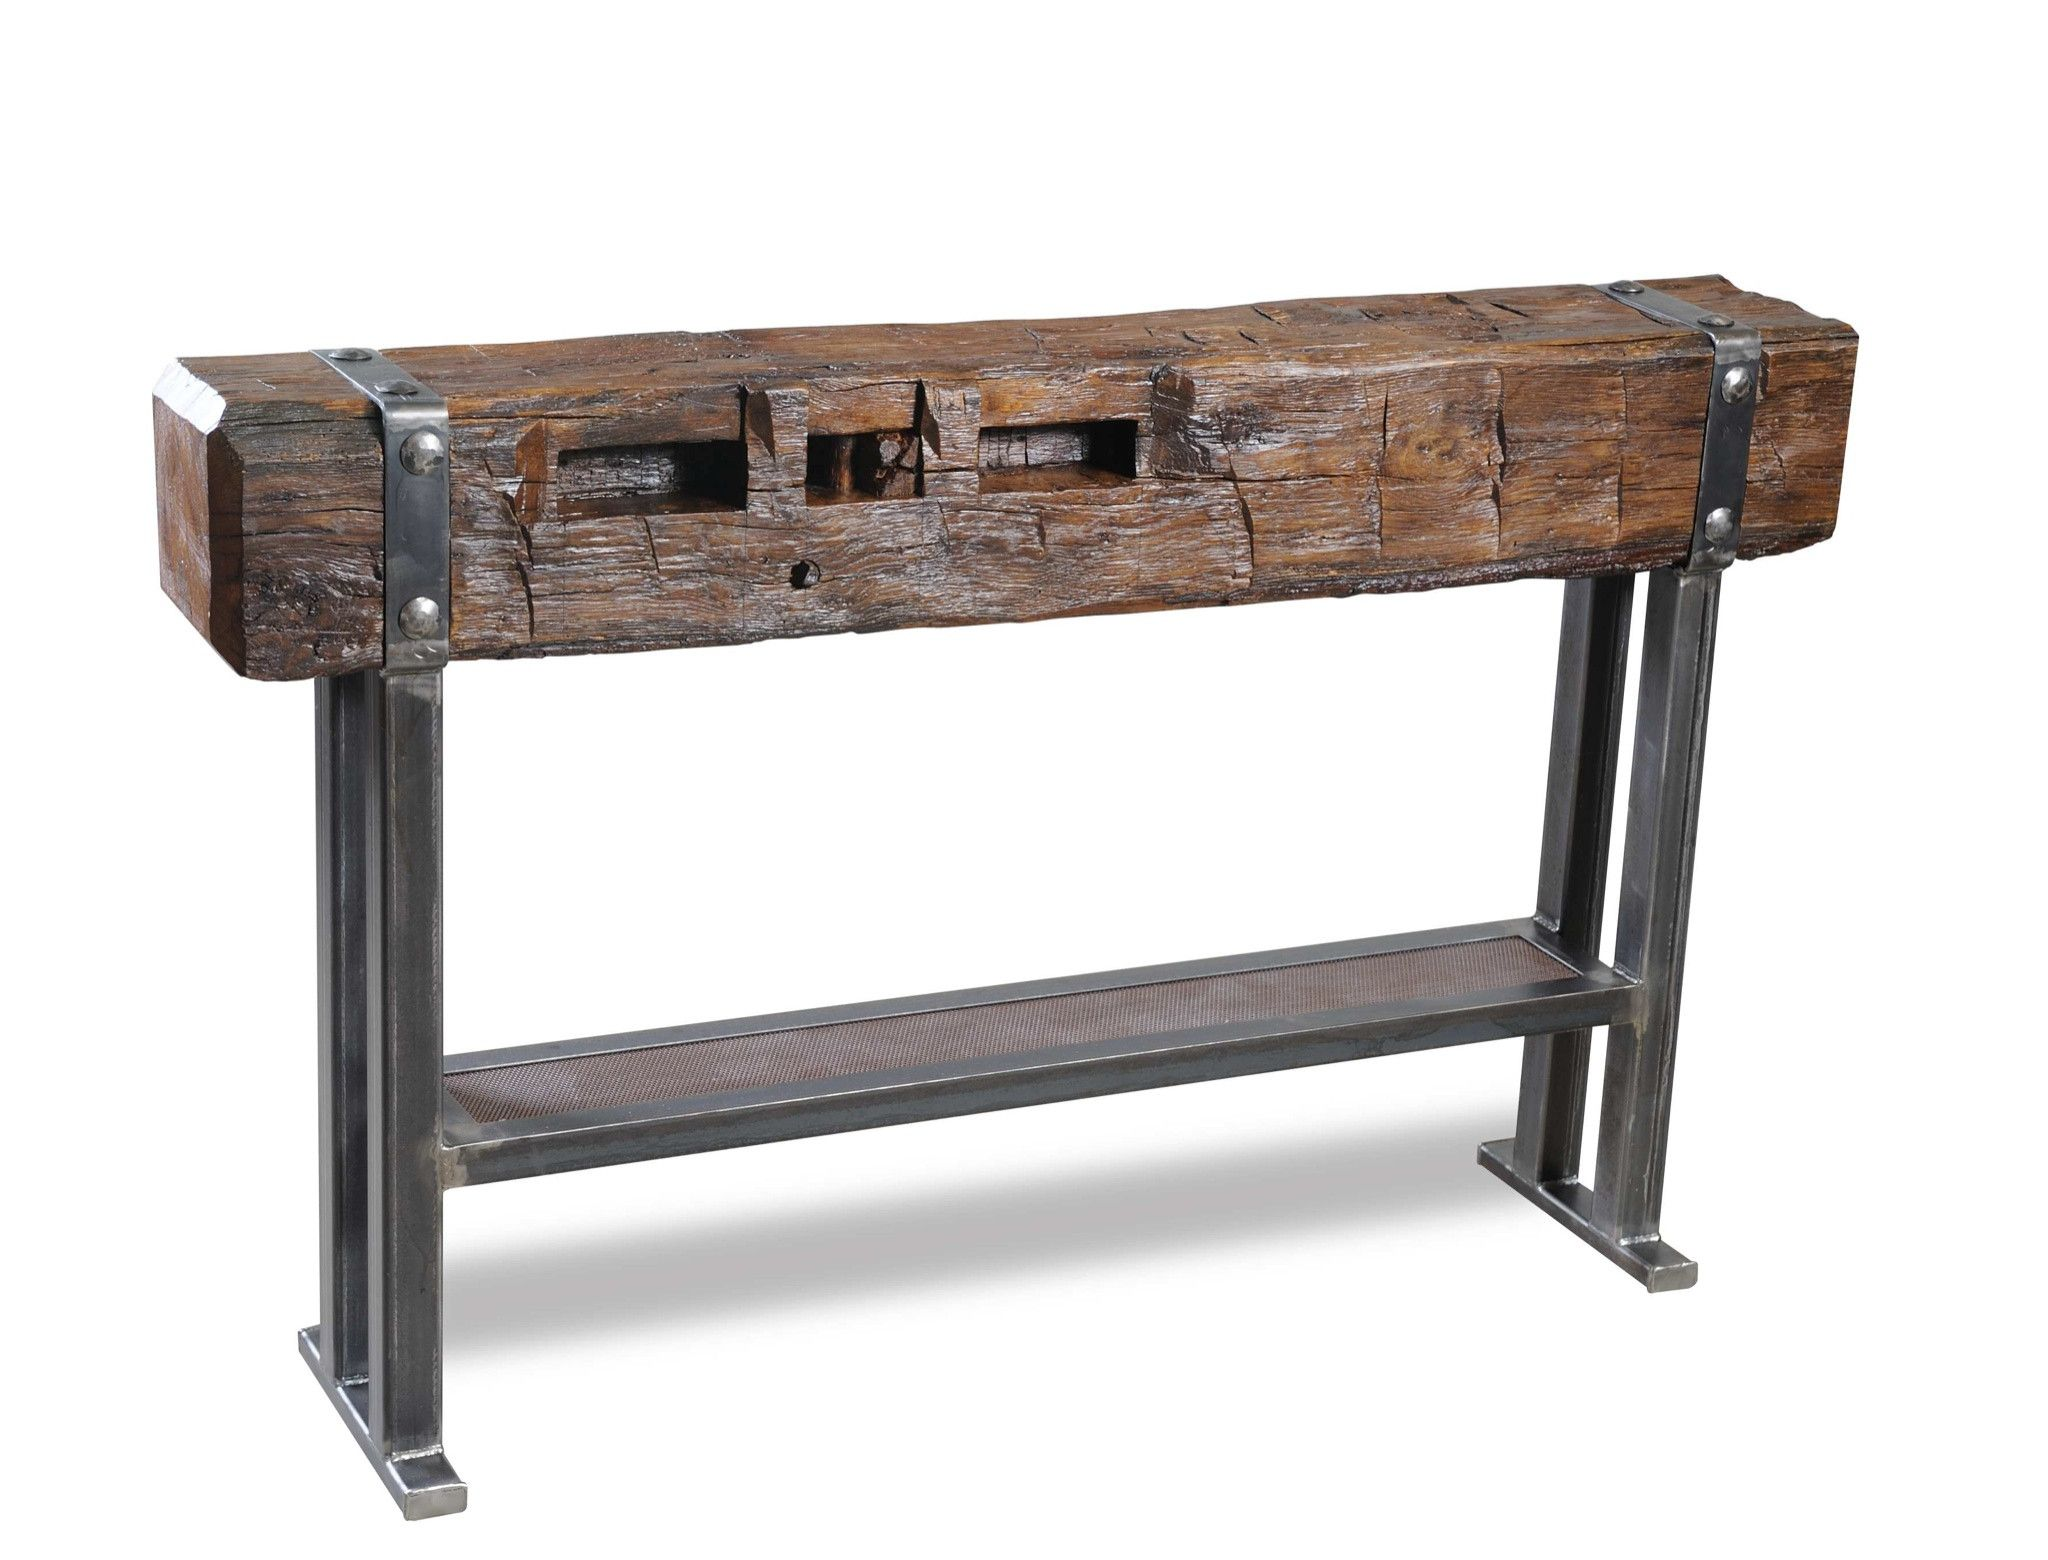 60 Inch Reclaimed Wood Console Table. 60 Inch Reclaimed Wood Console Table   Console tables